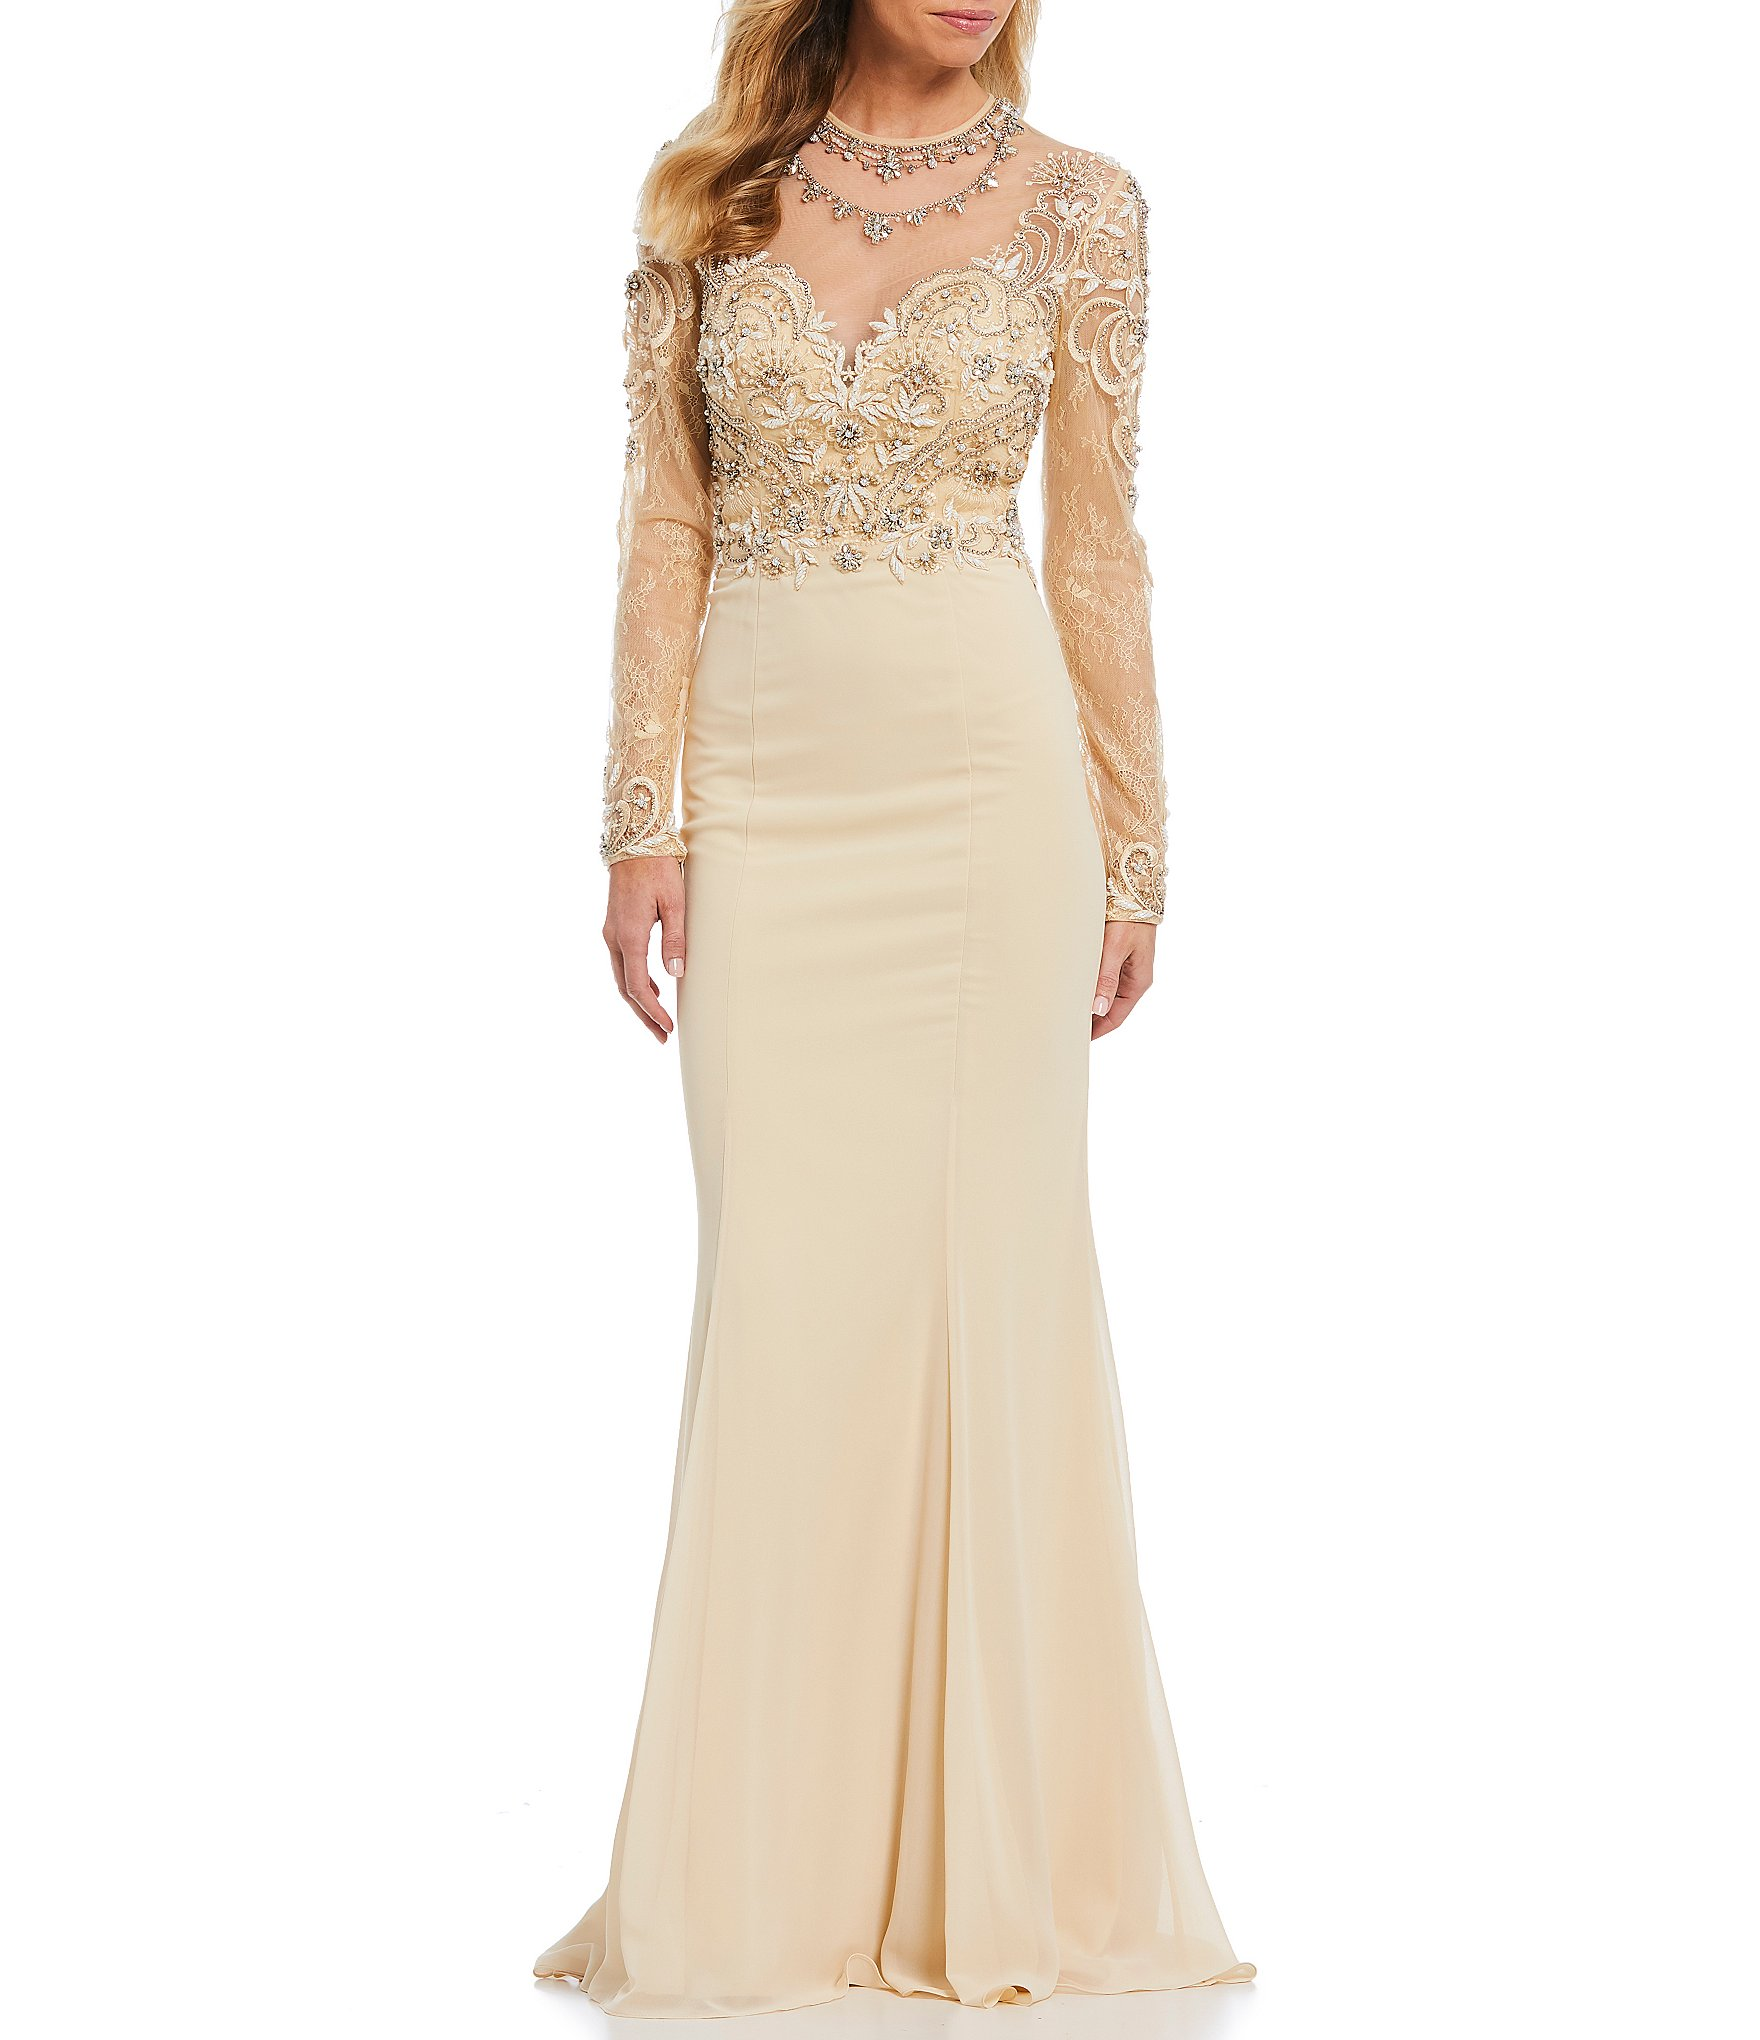 Dillards Wedding Gifts: Terani Couture Beaded Illusion Bodice Chiffon Gown